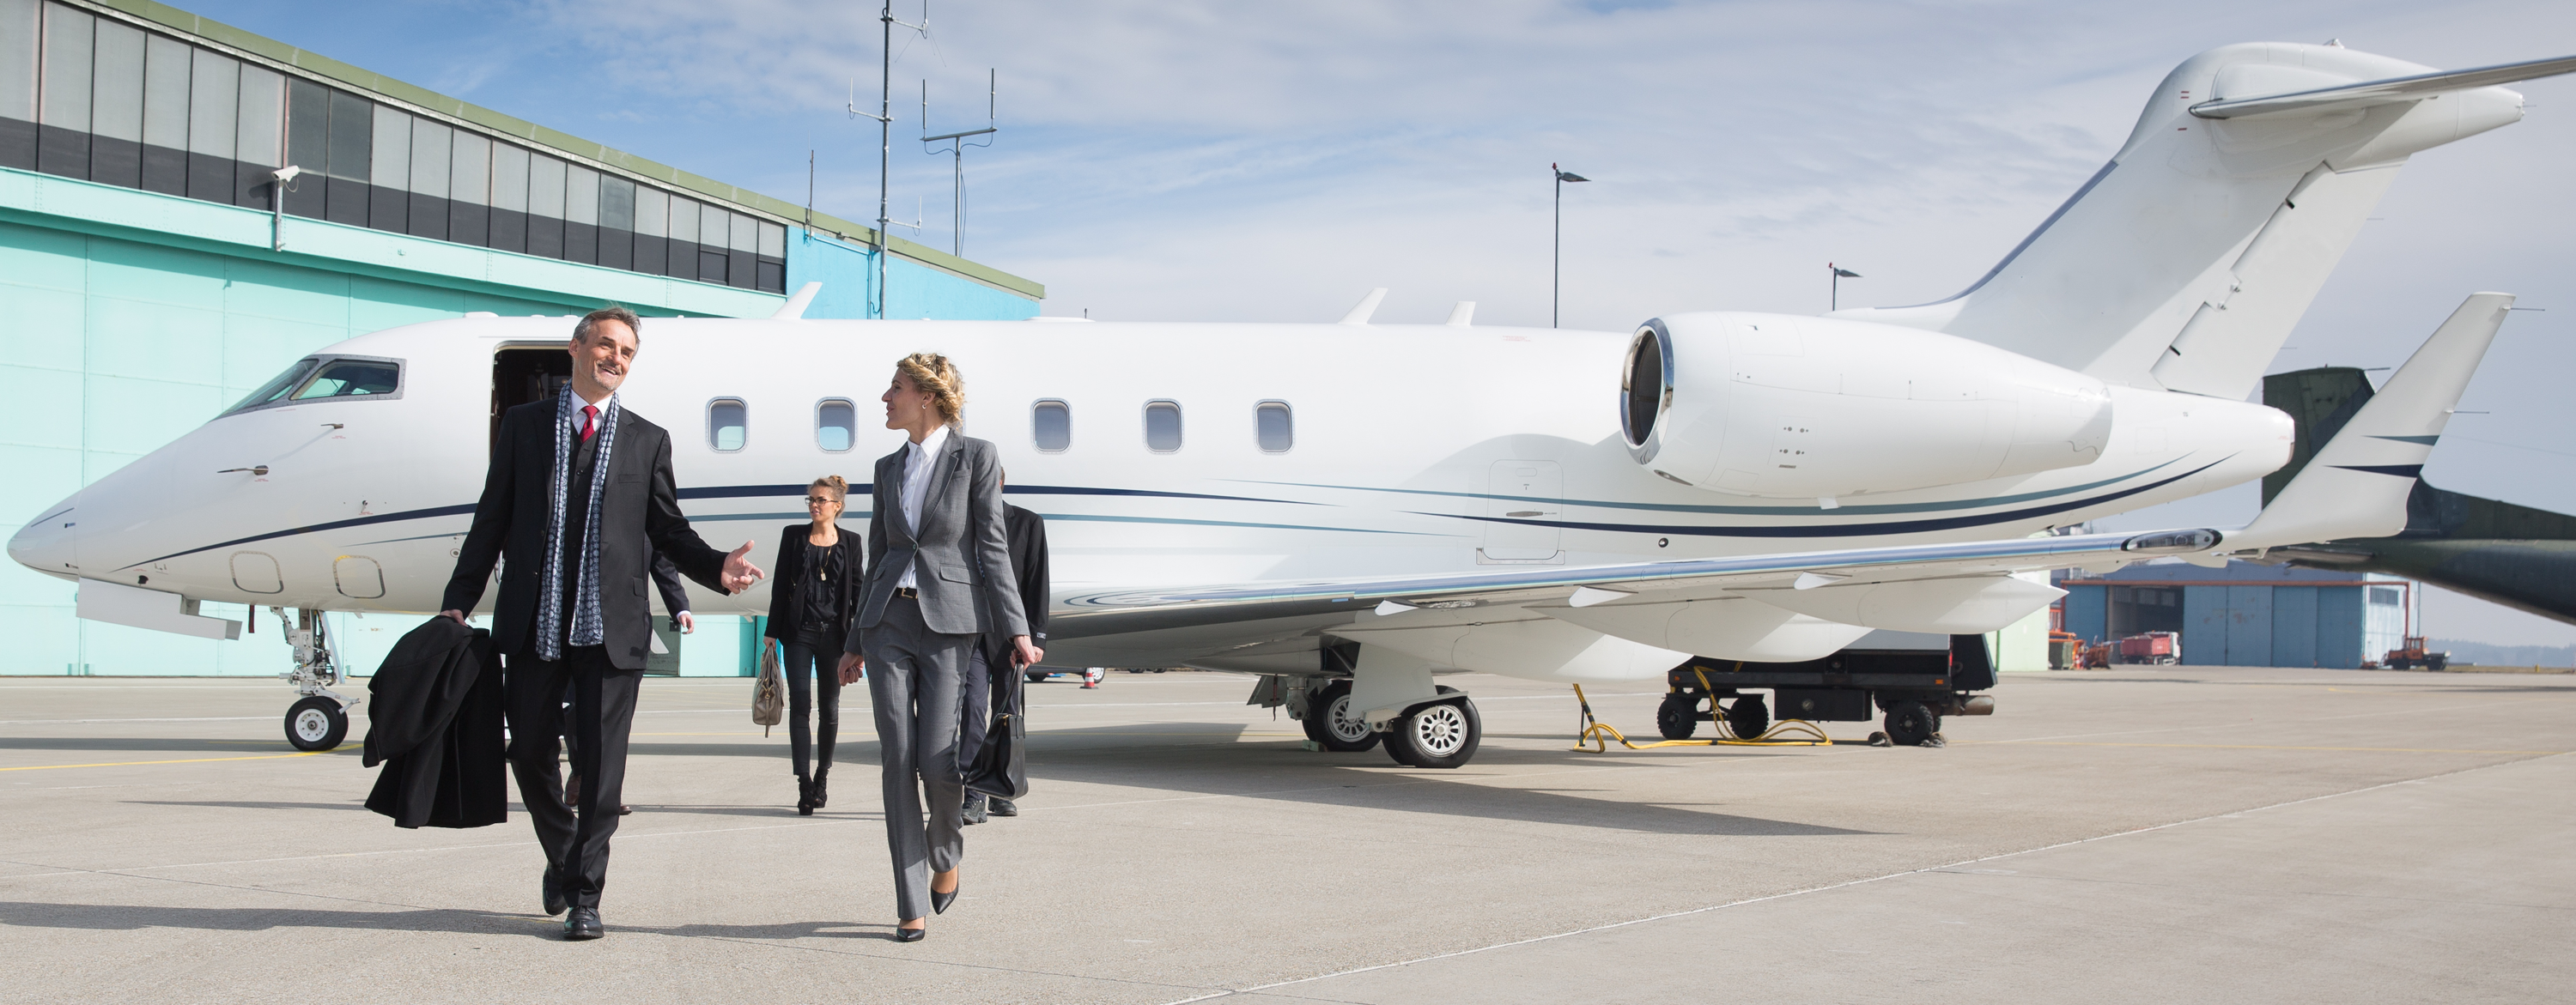 private jet for business and personal travel maybe a luxury but can also cause auditors to target you with a residency audit